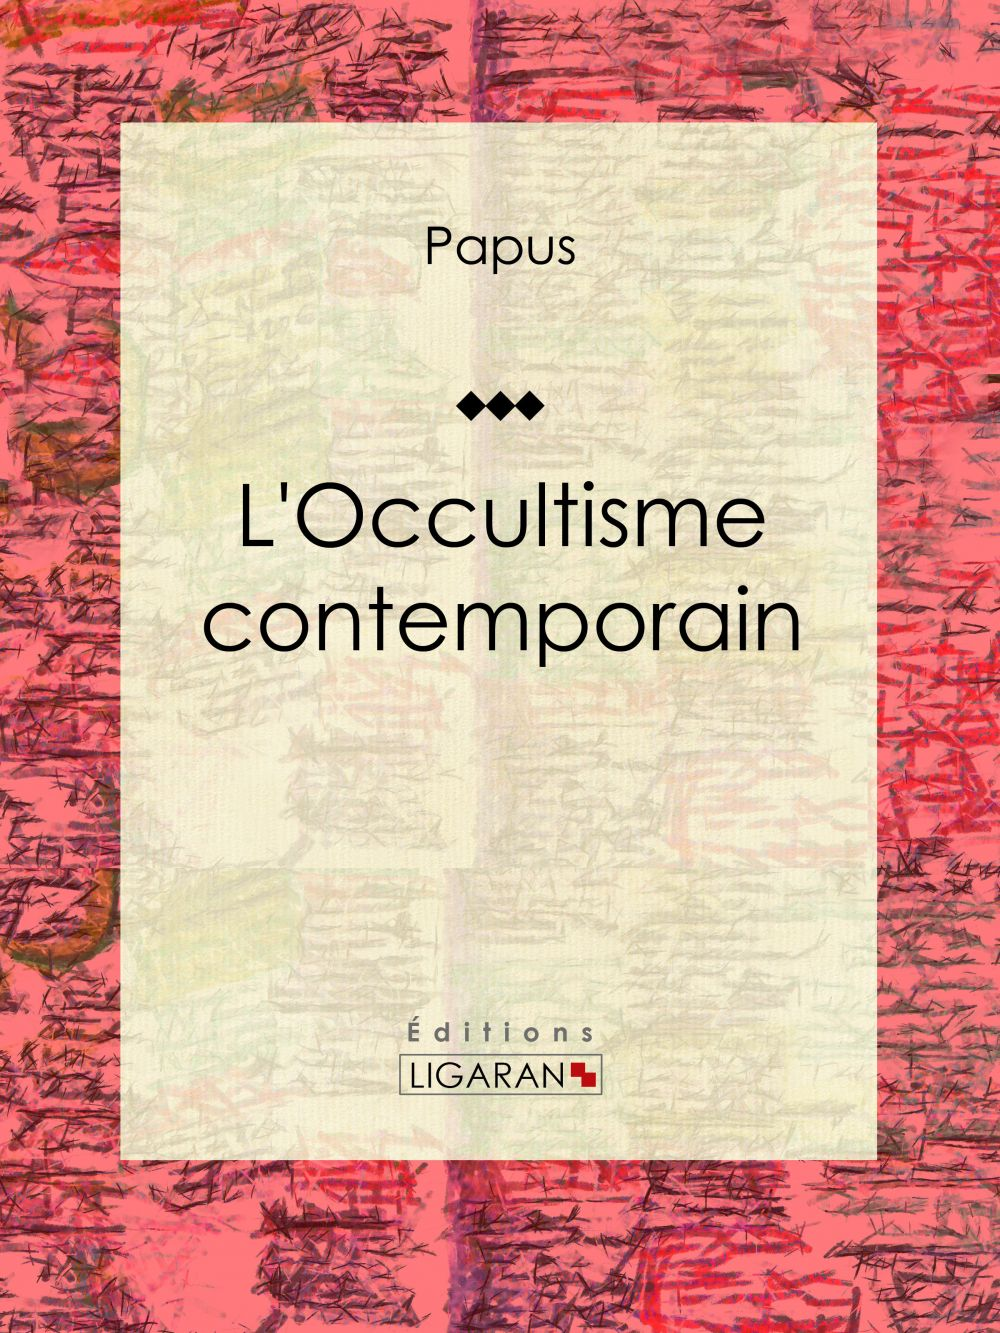 L'Occultisme contemporain